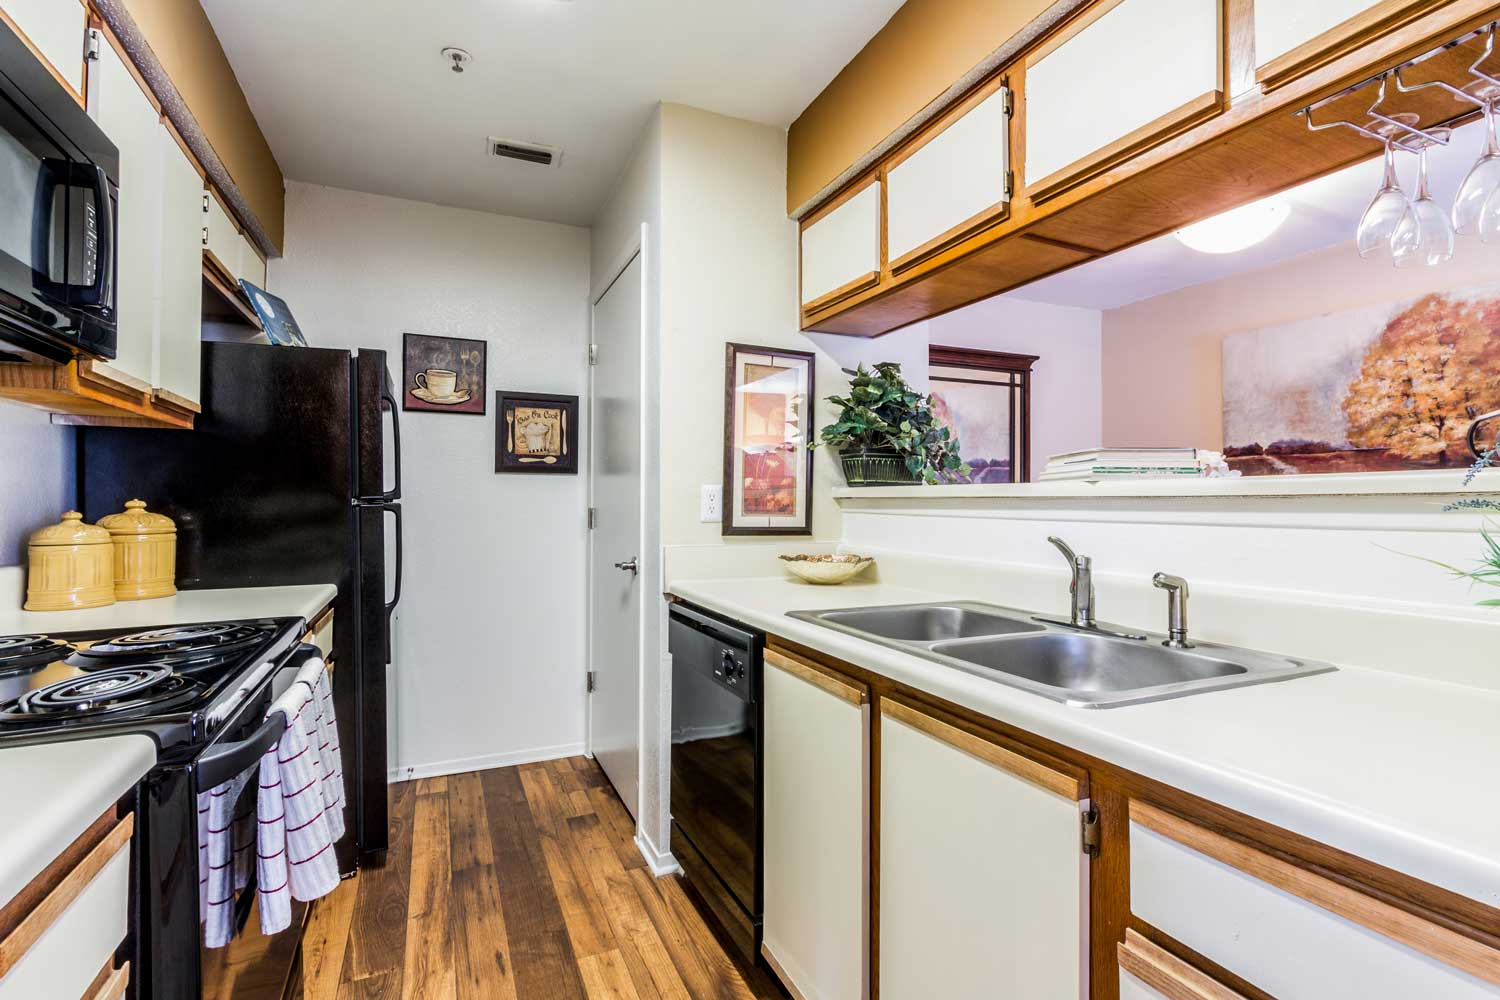 All Black Kitchen Appliances at Forest Hills Apartments in Dallas, TX